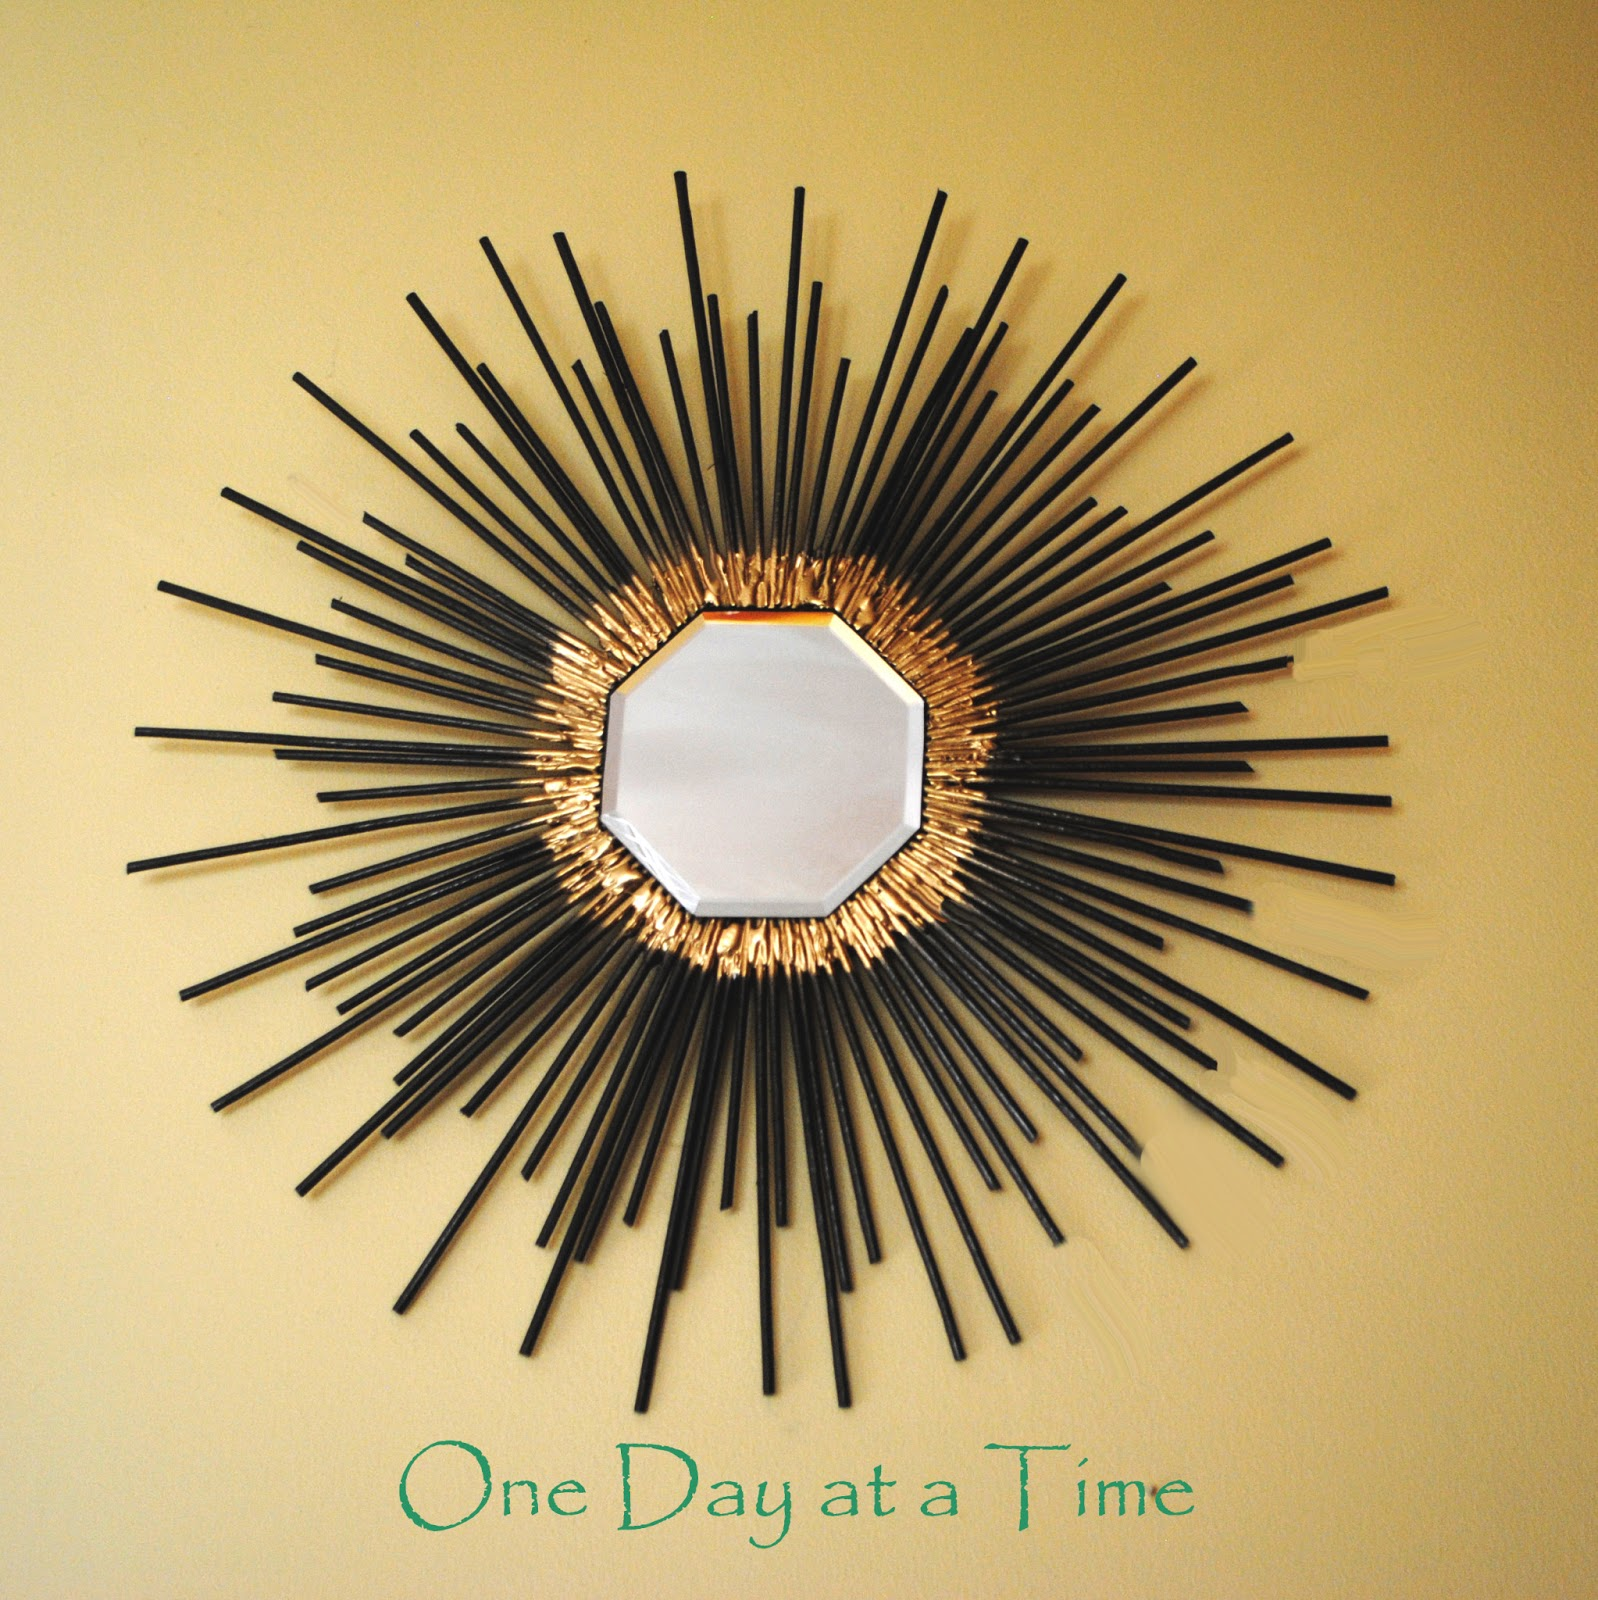 One Day at a Time: 50\'s Inspired Starburst Wall Art